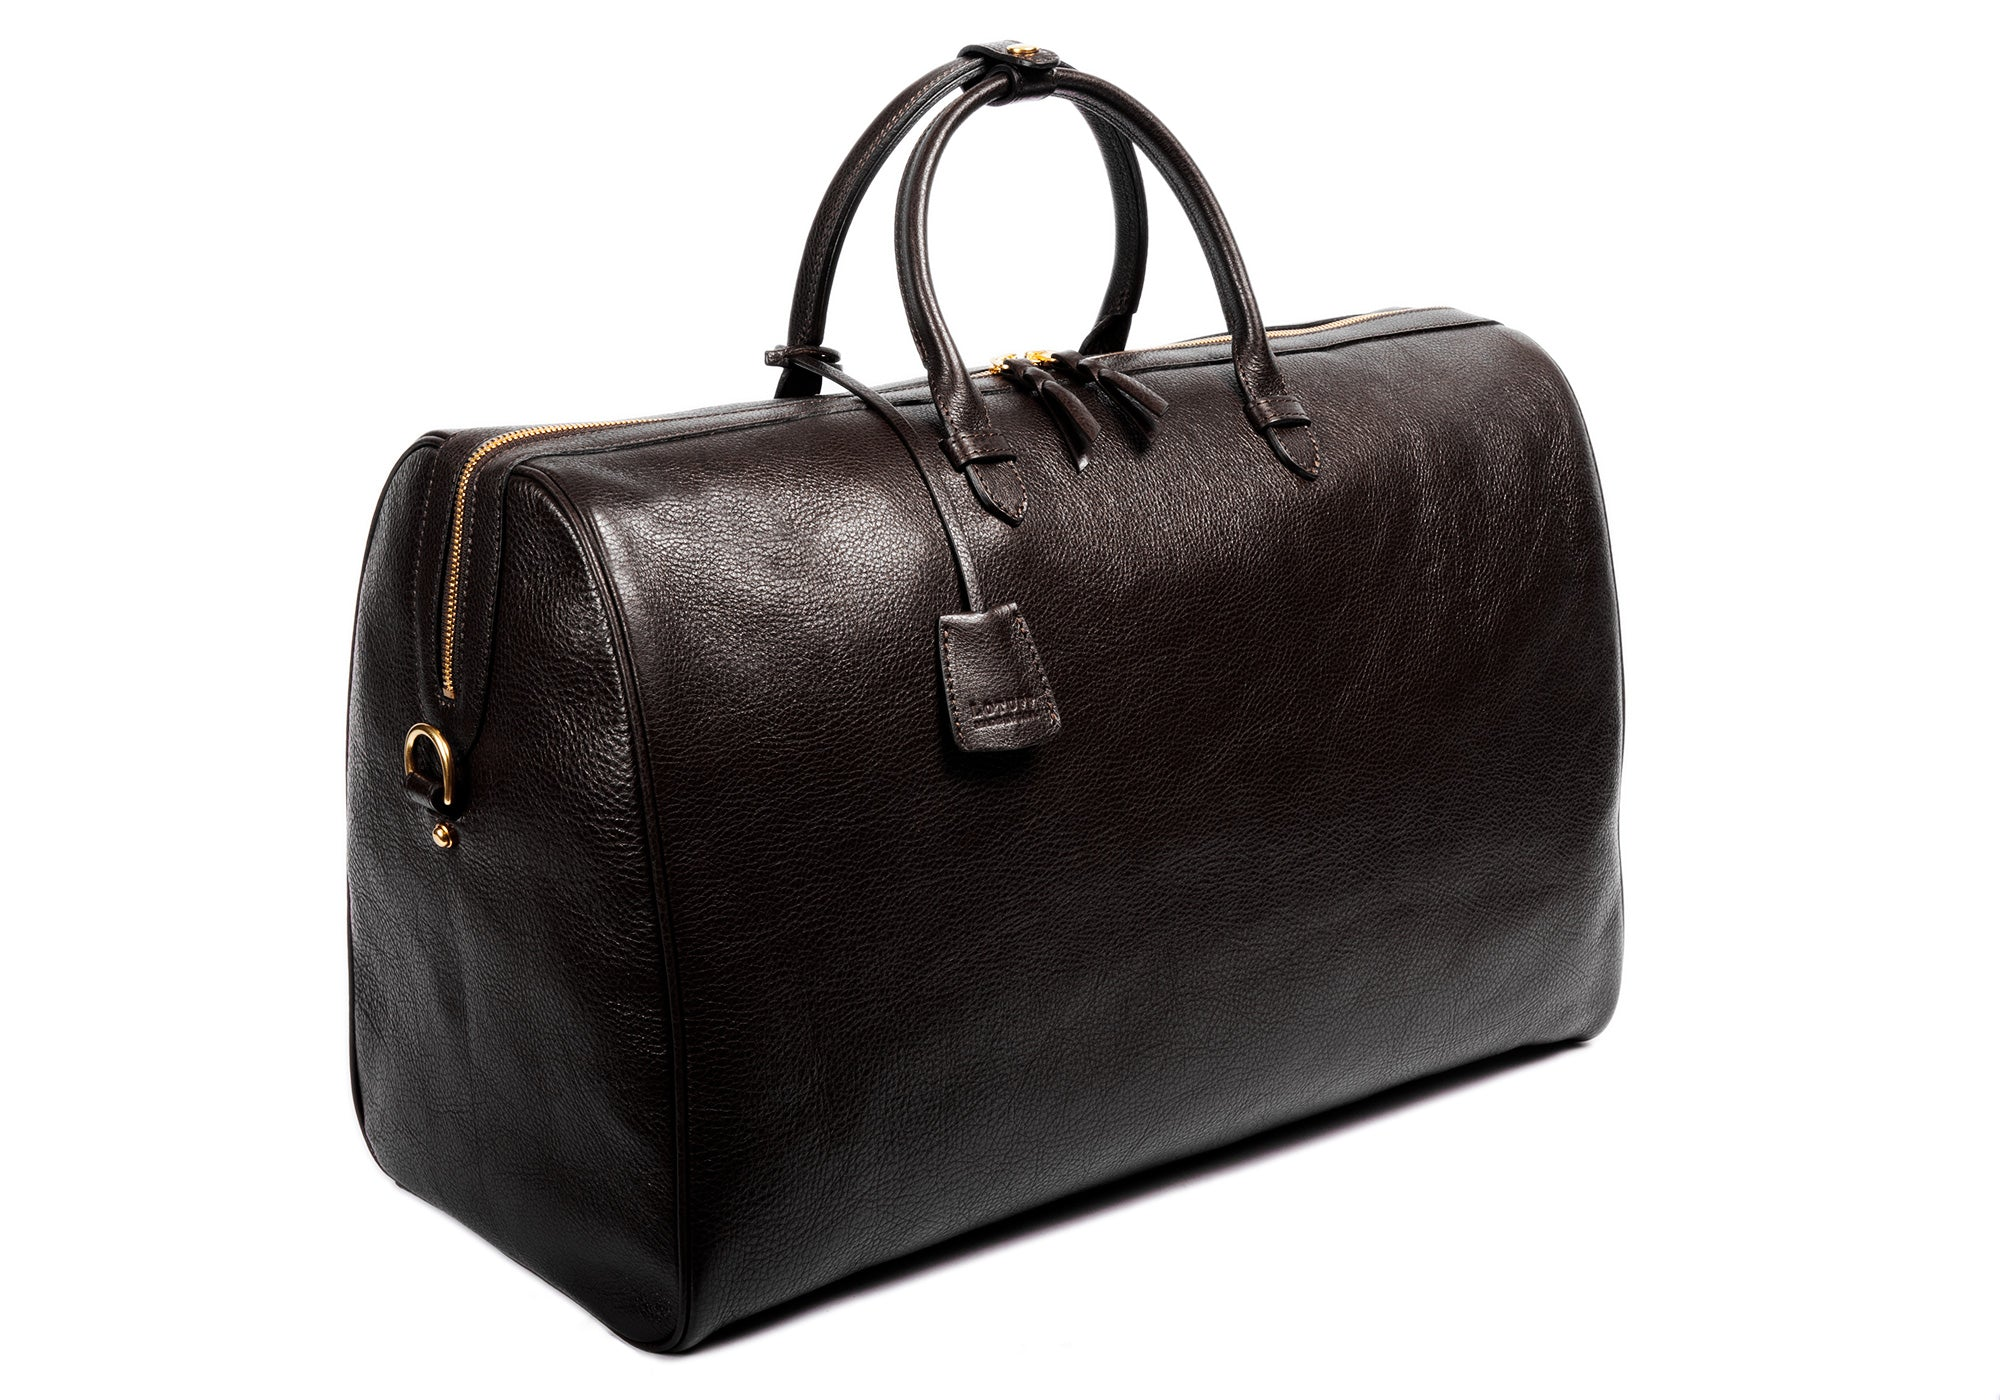 No. 12 Weekender Bag Chocolate